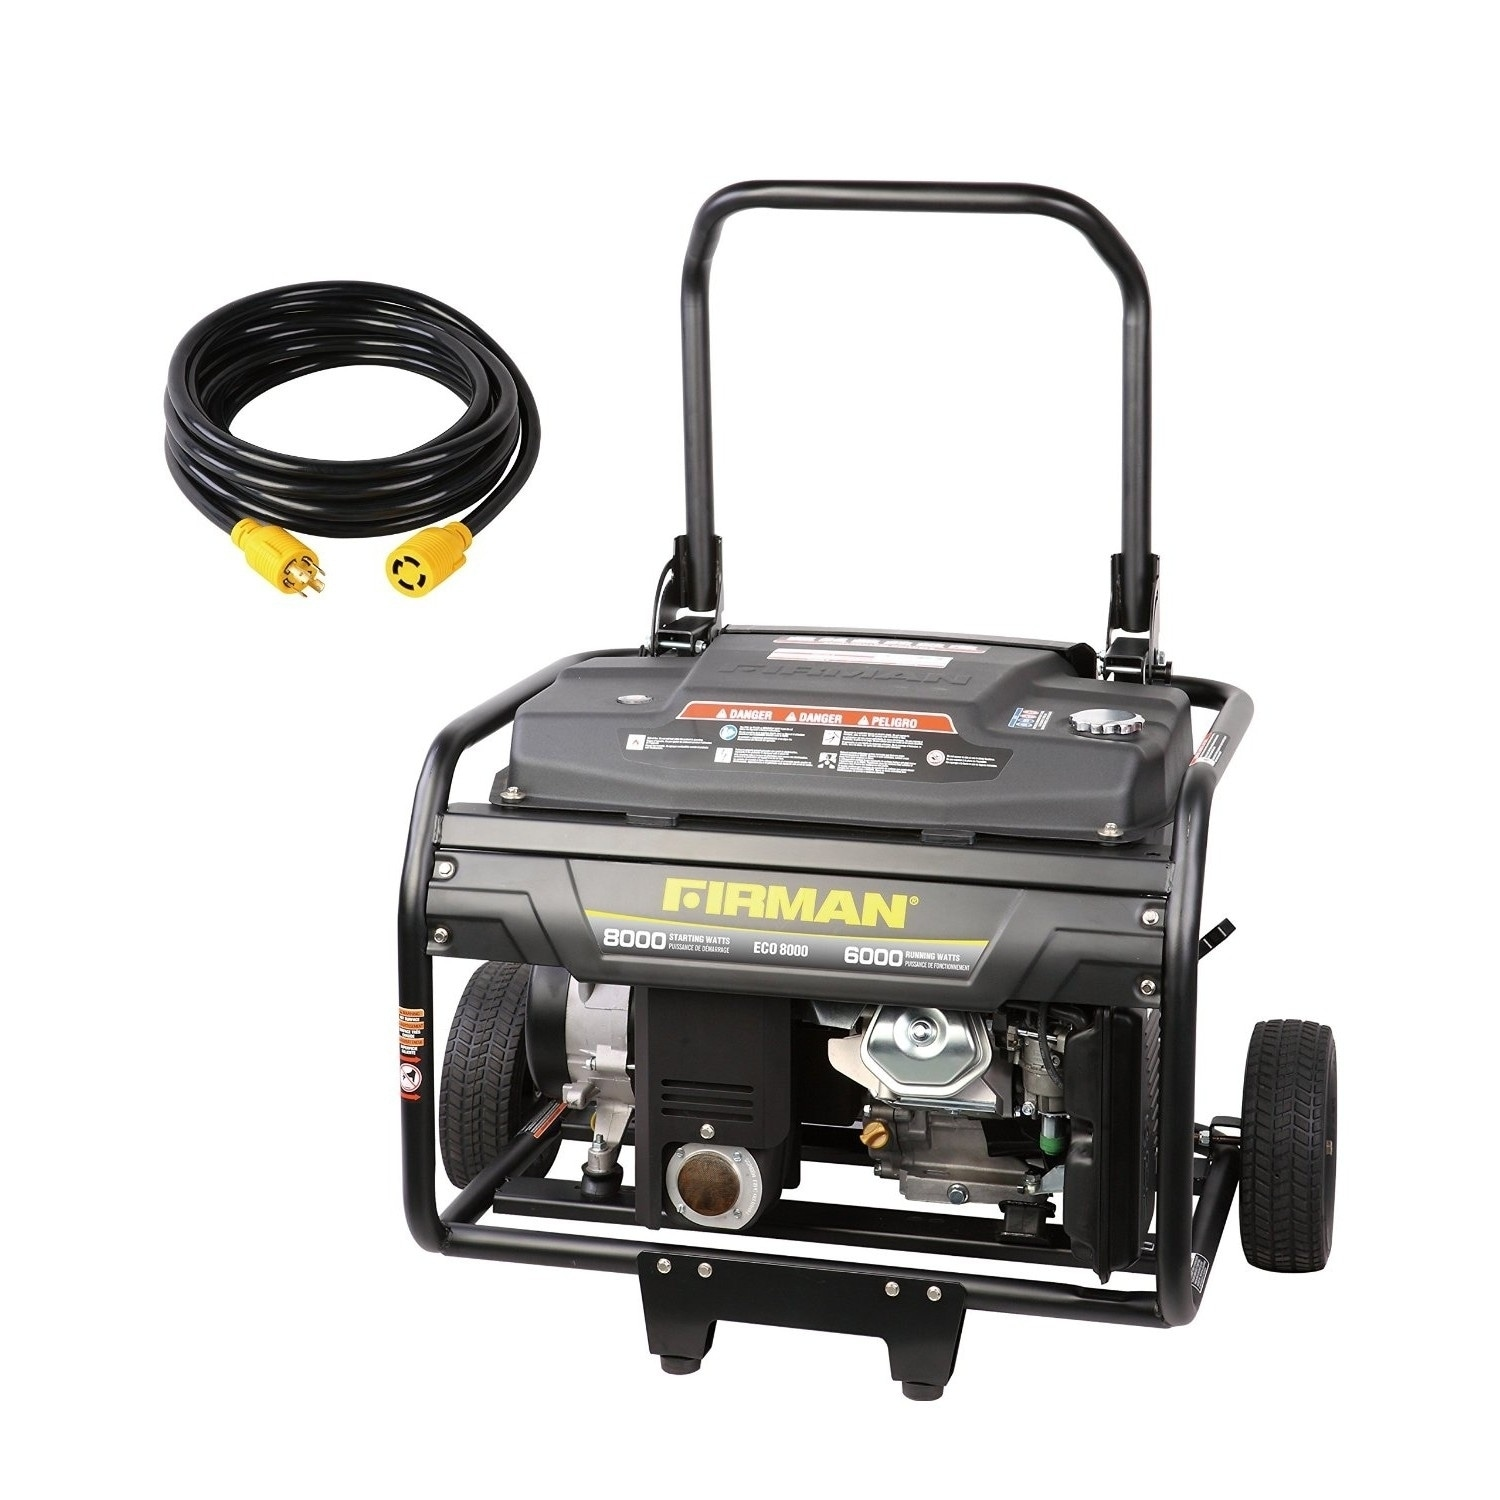 All power 6000w generator reviews Generators